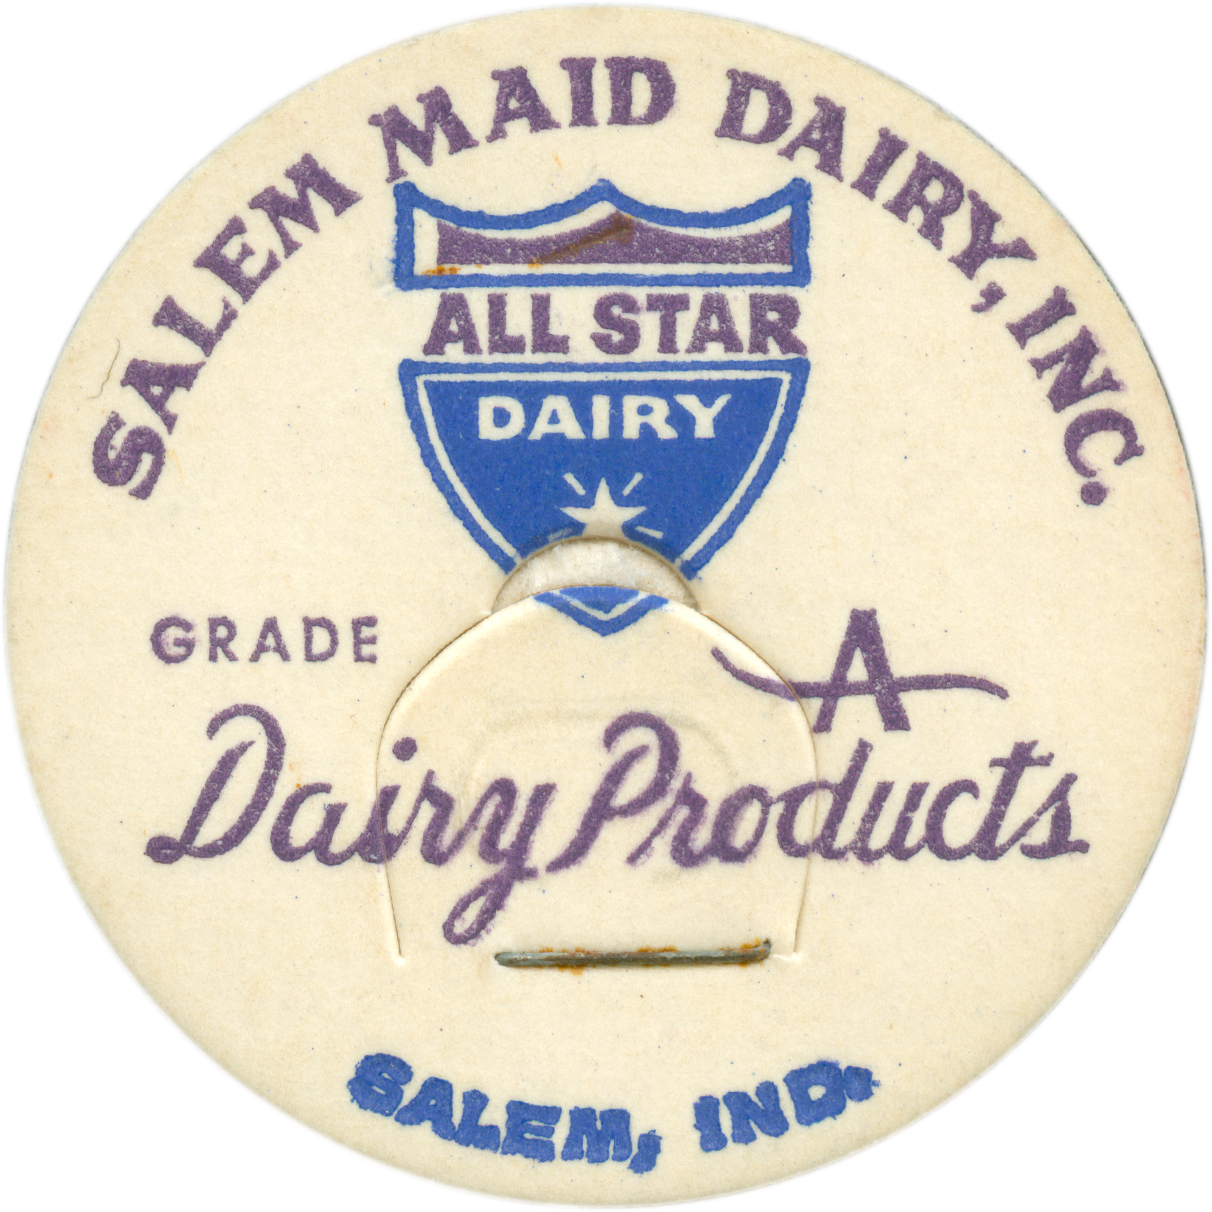 VernacularCircles__0001s_0037_Salem-Maid-Dairy-Inc.---Grade-A-Dairy-Products.png